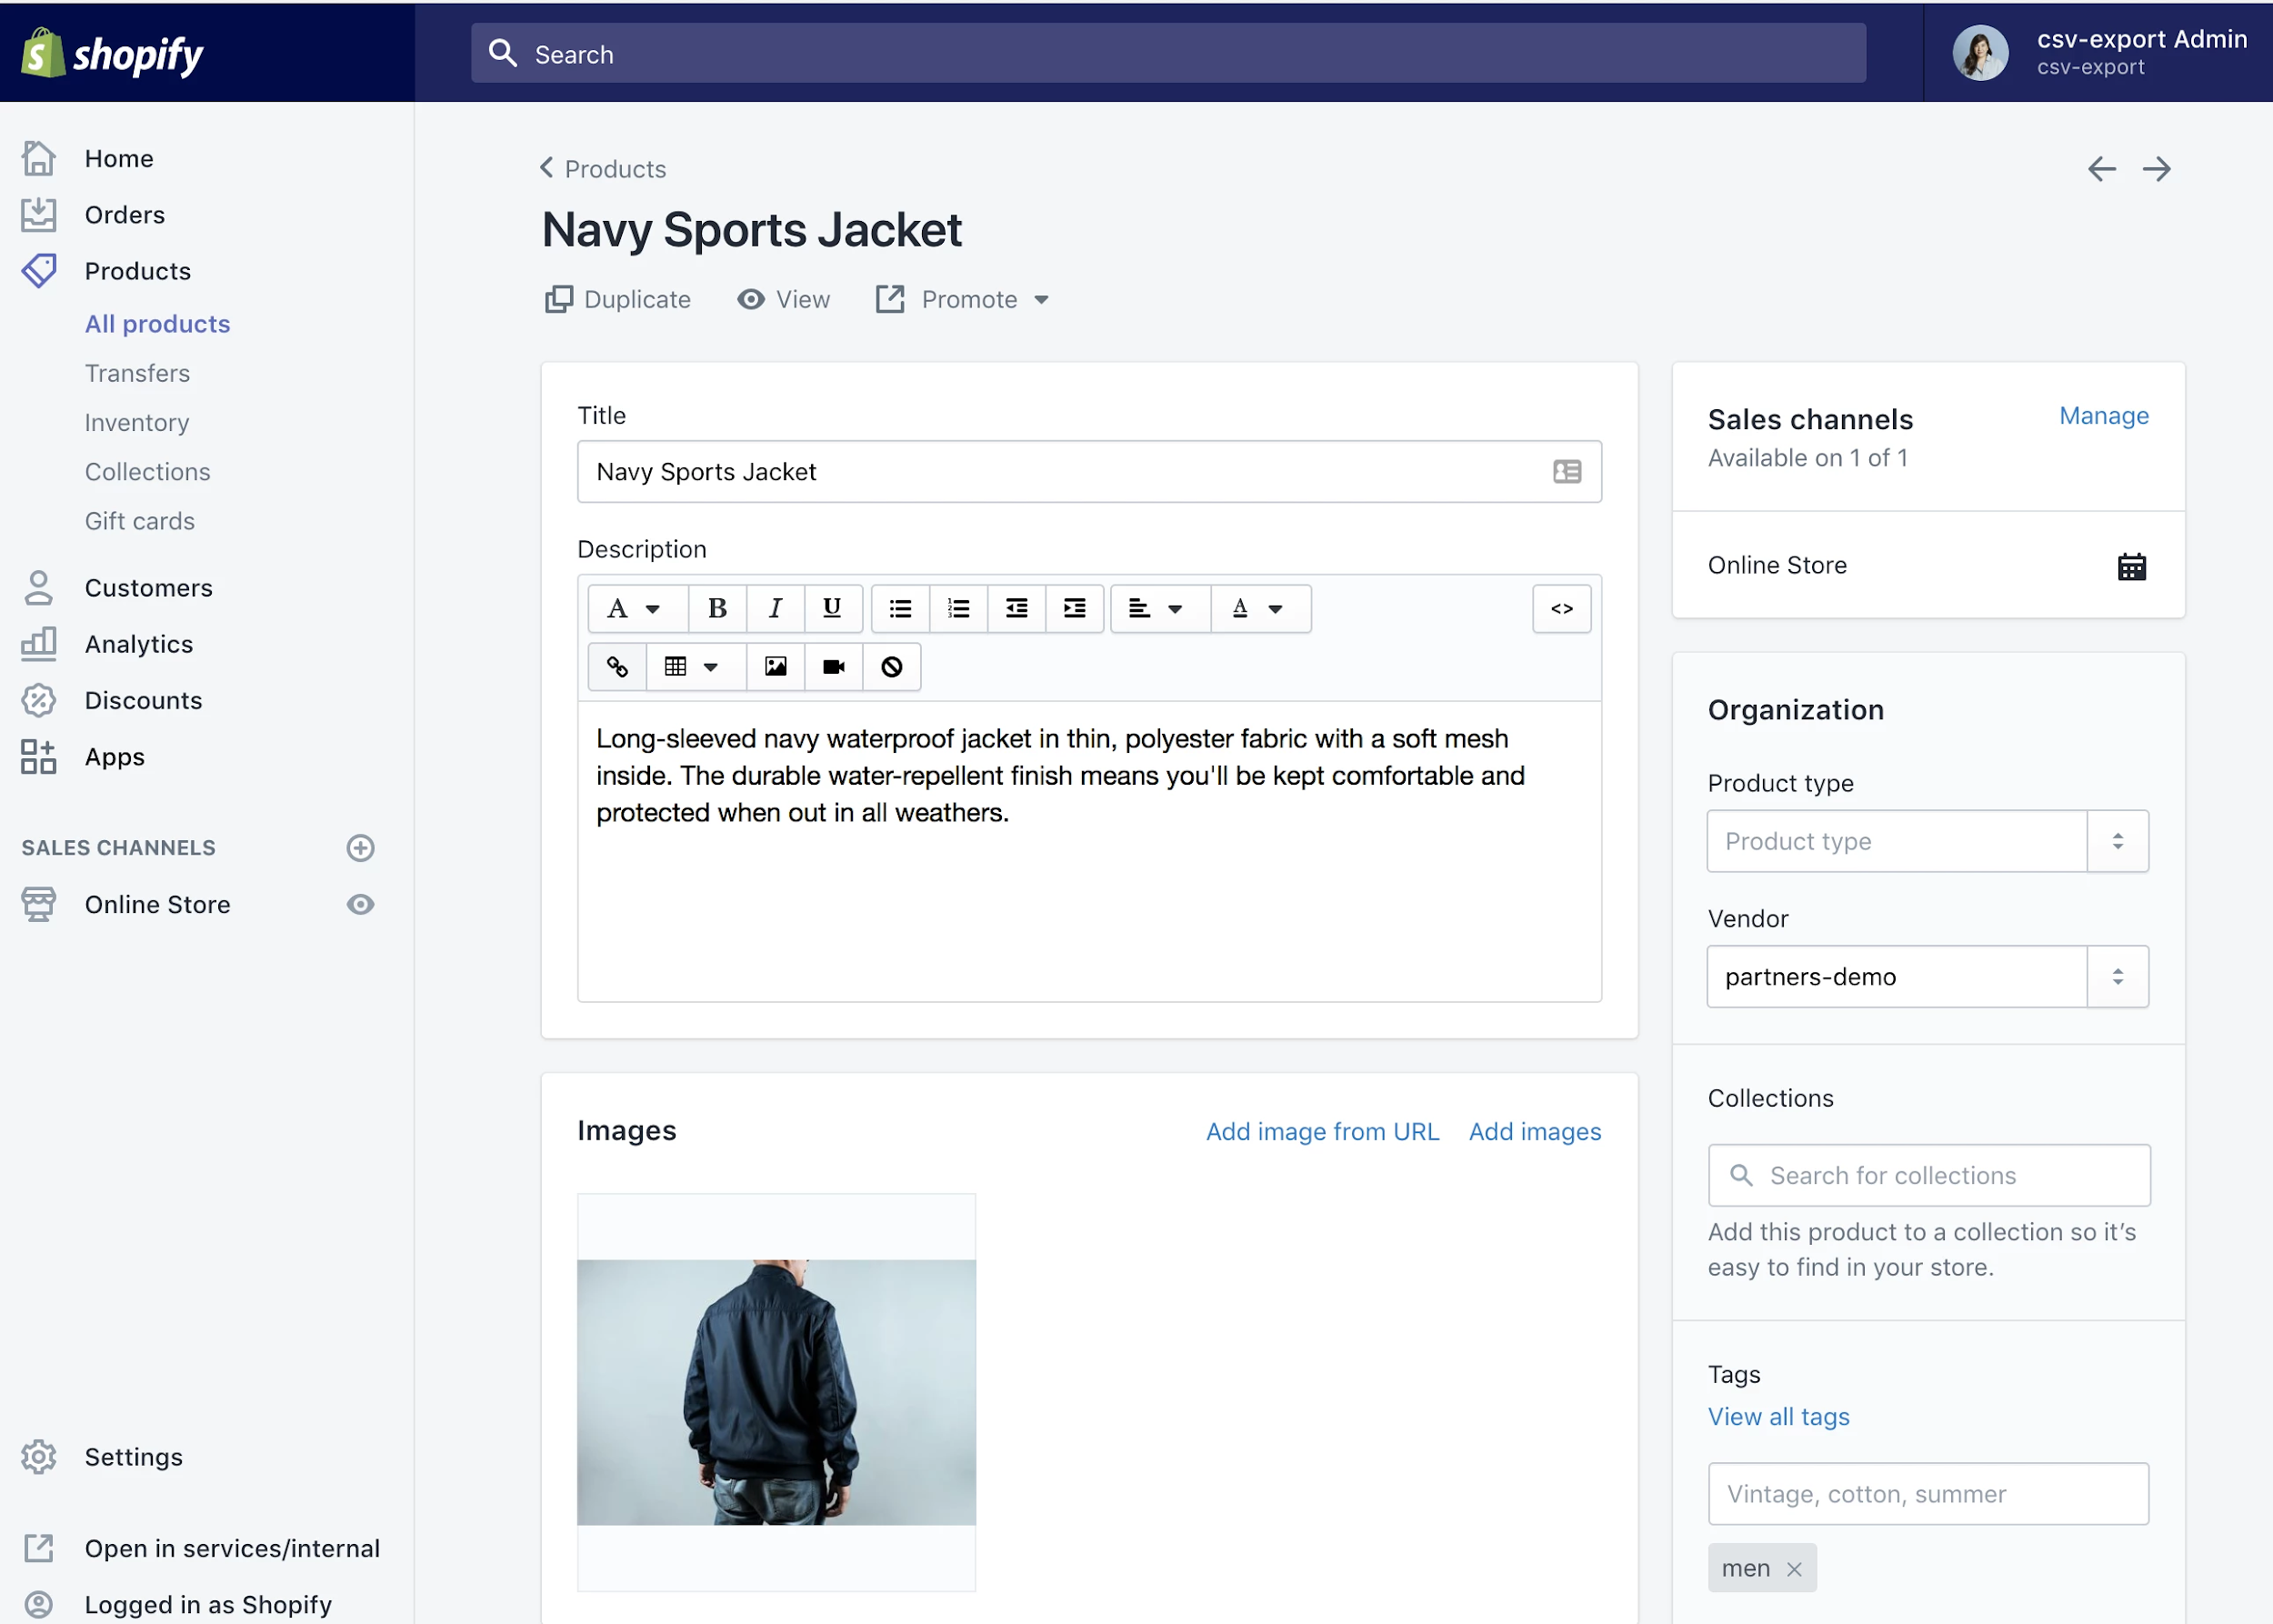 Editing contents of the product in Shopify